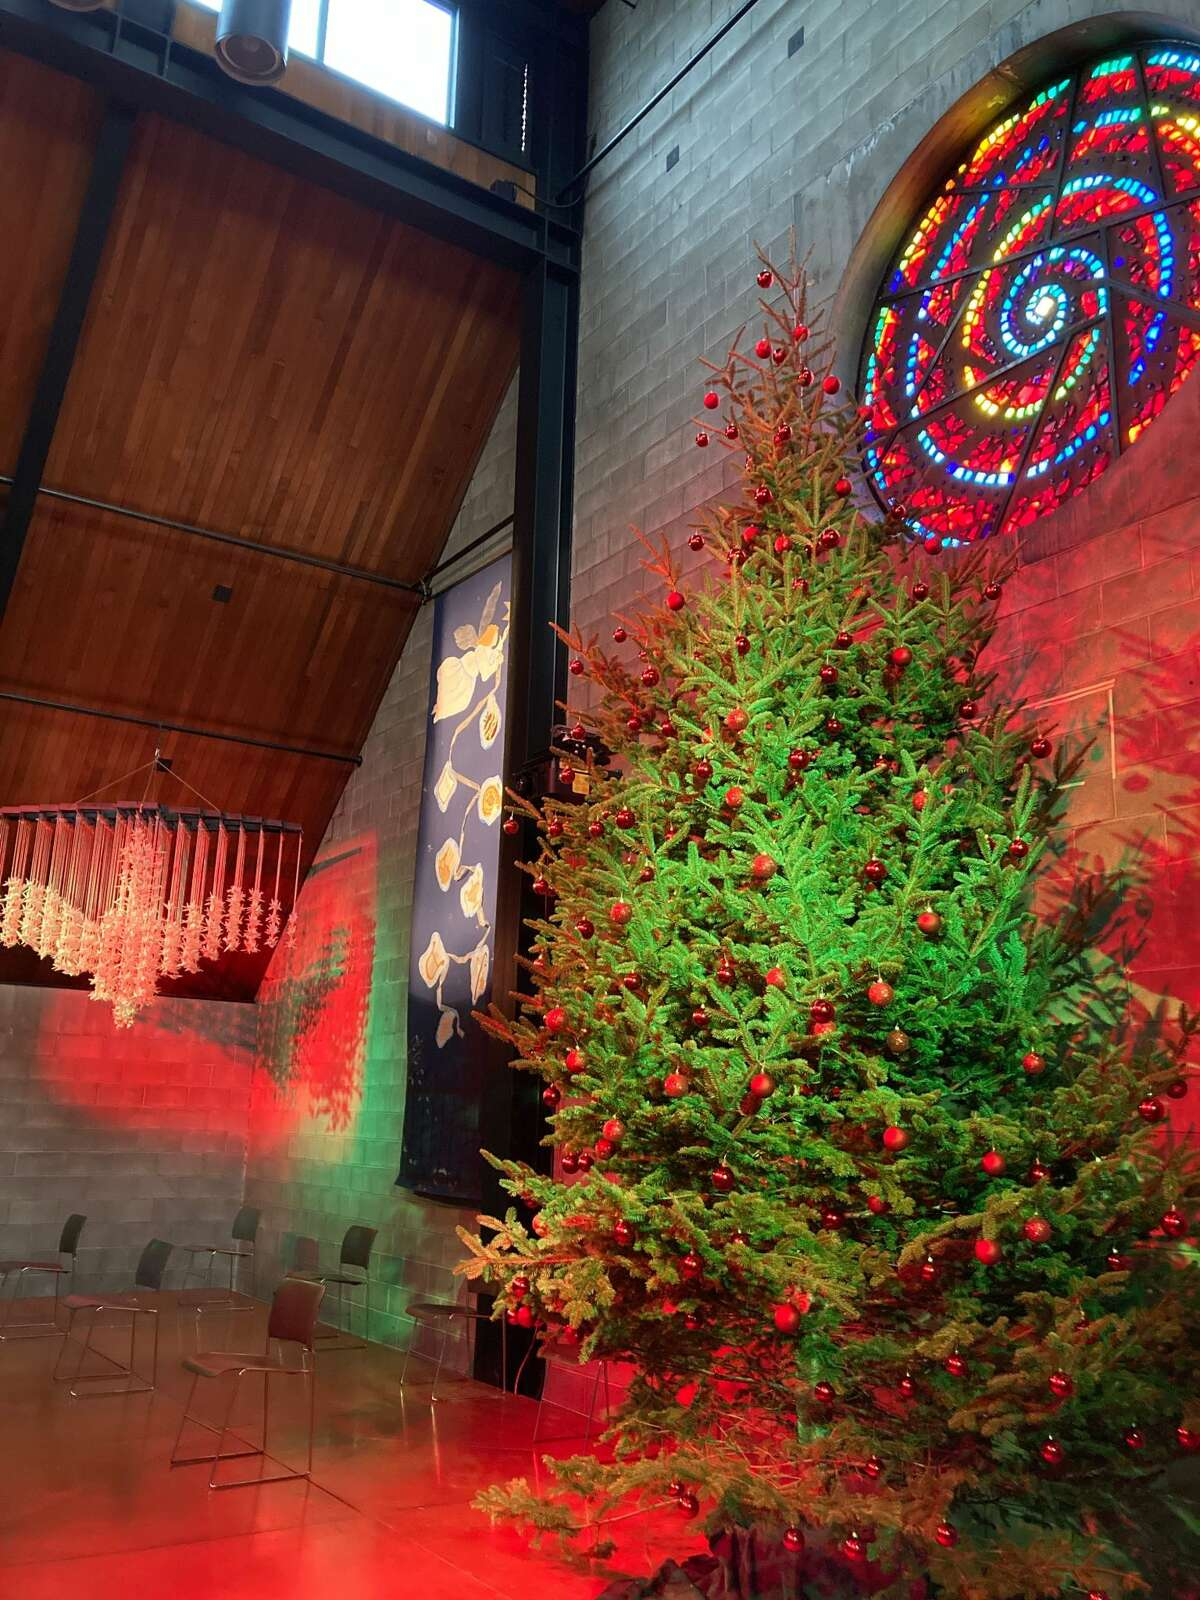 Every year, the Christ Sun of Justice Chapel & Cultural Center buys a huge tree and a smaller students' Christmas tree. The big tree sits near the oculus stained glass window designed by liturgical artist Ade Bethune.